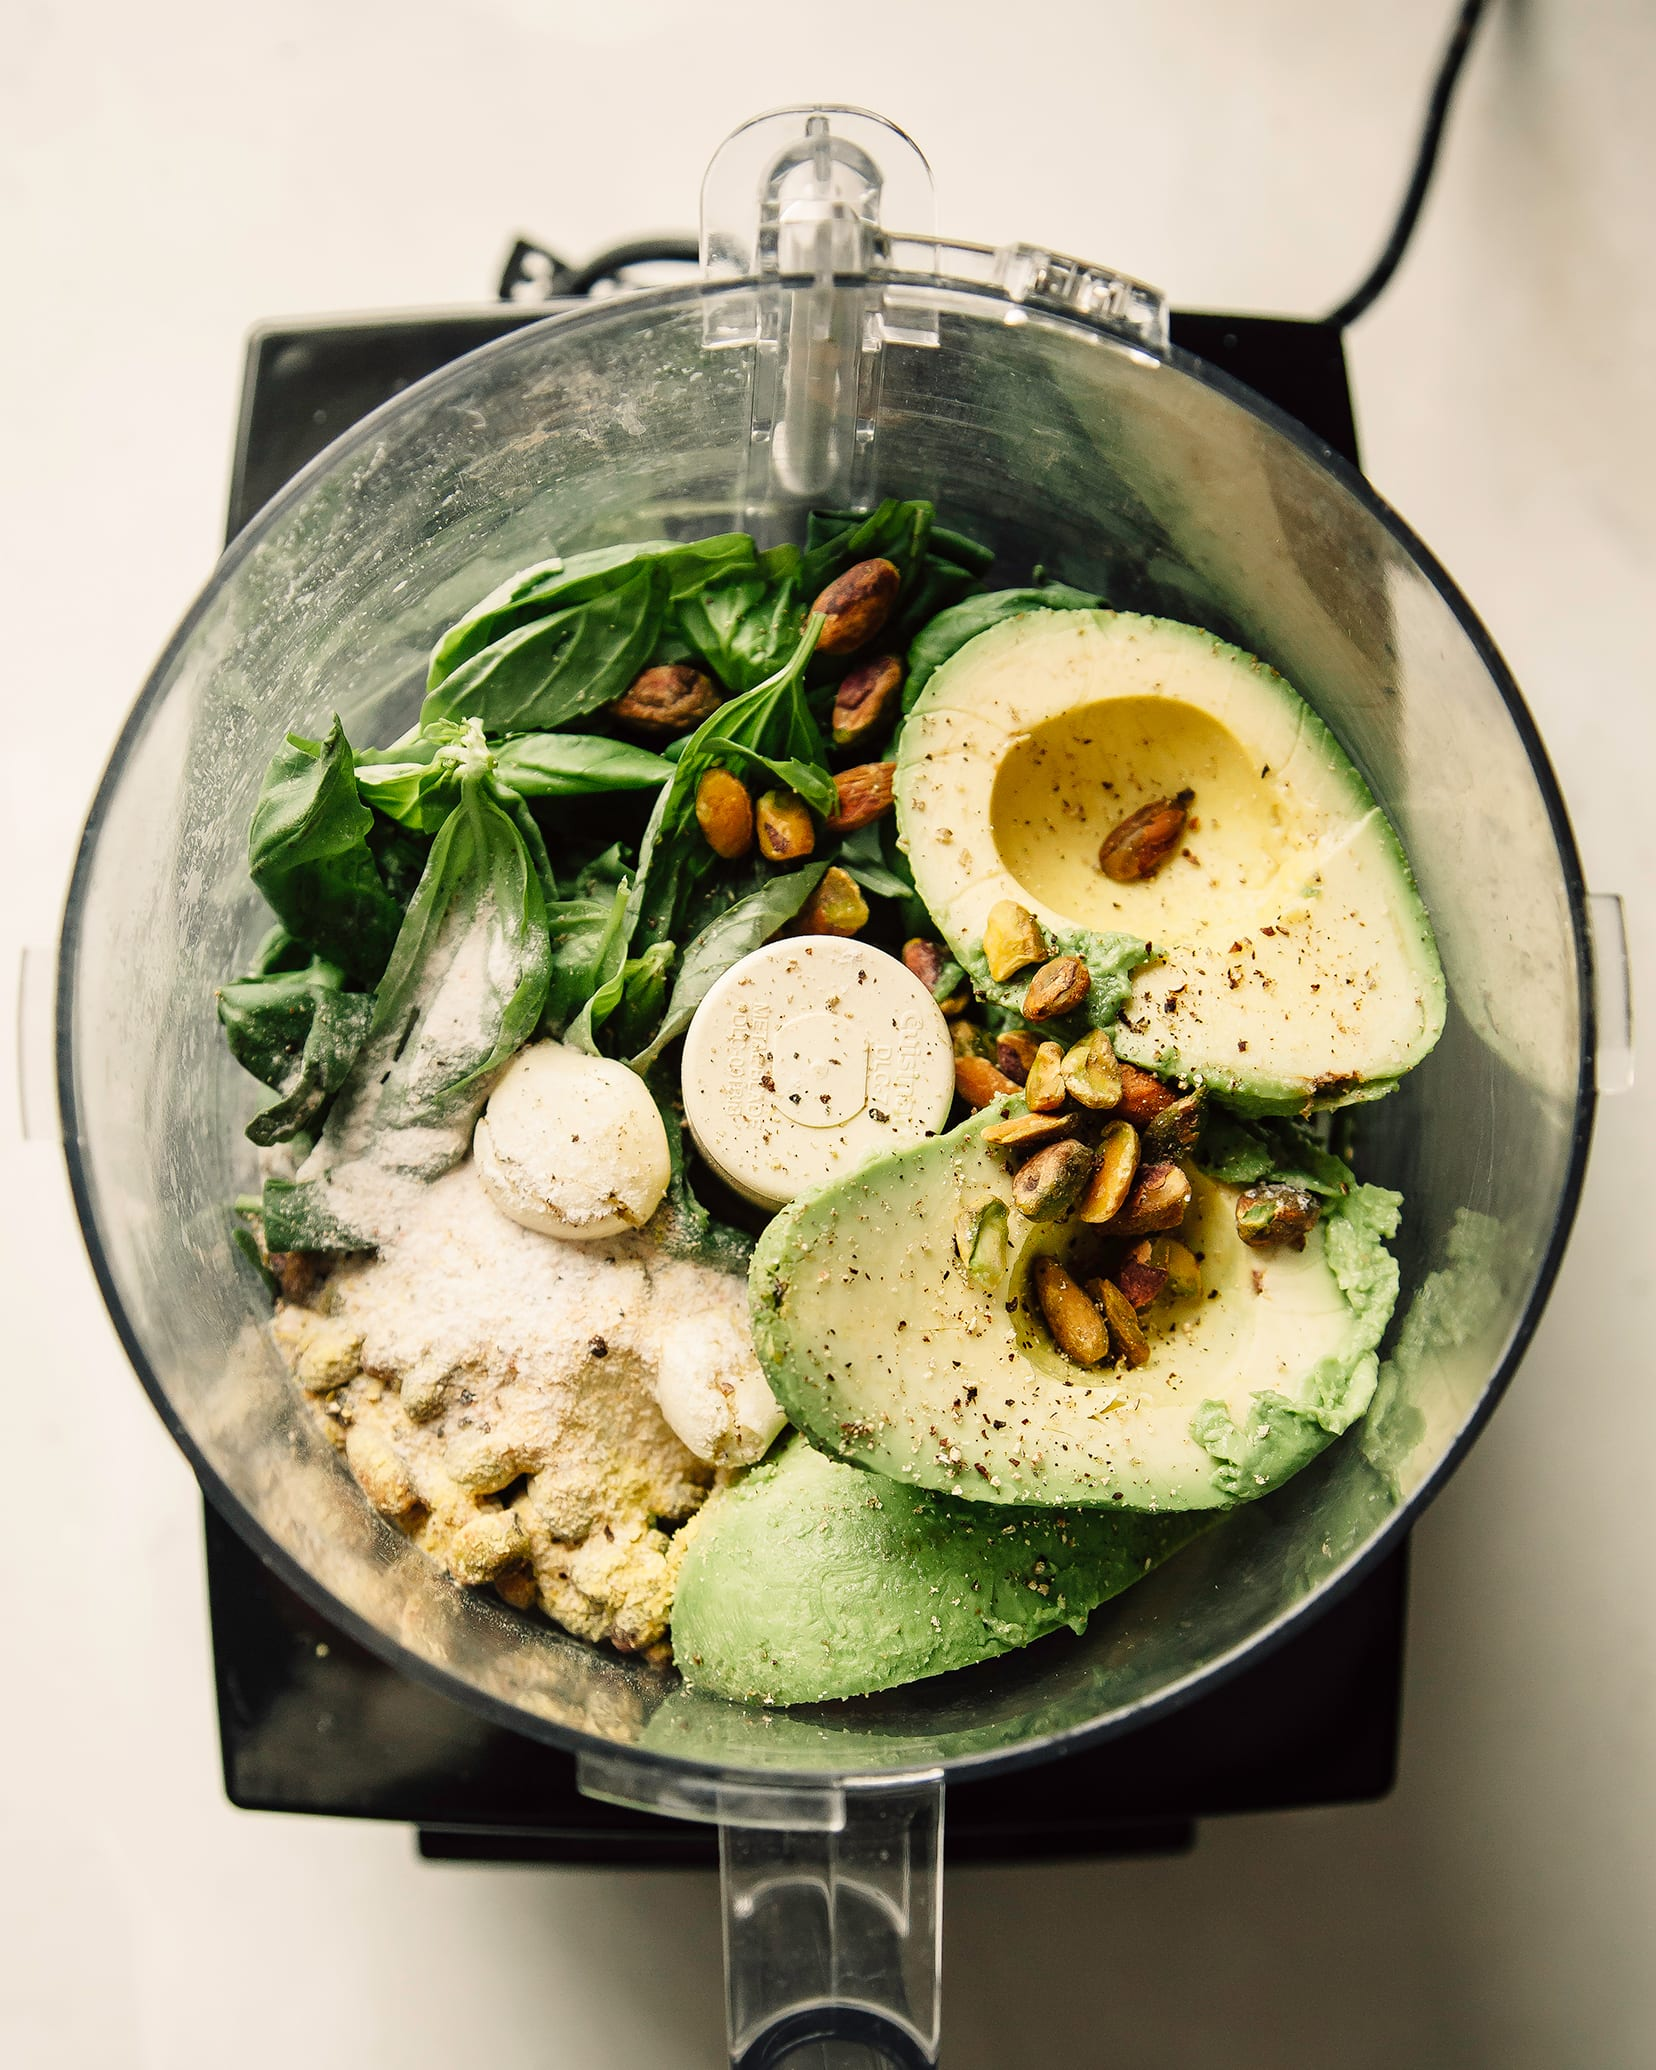 An overhead shot of an open food processor with avocado pesto sauce ingredients.